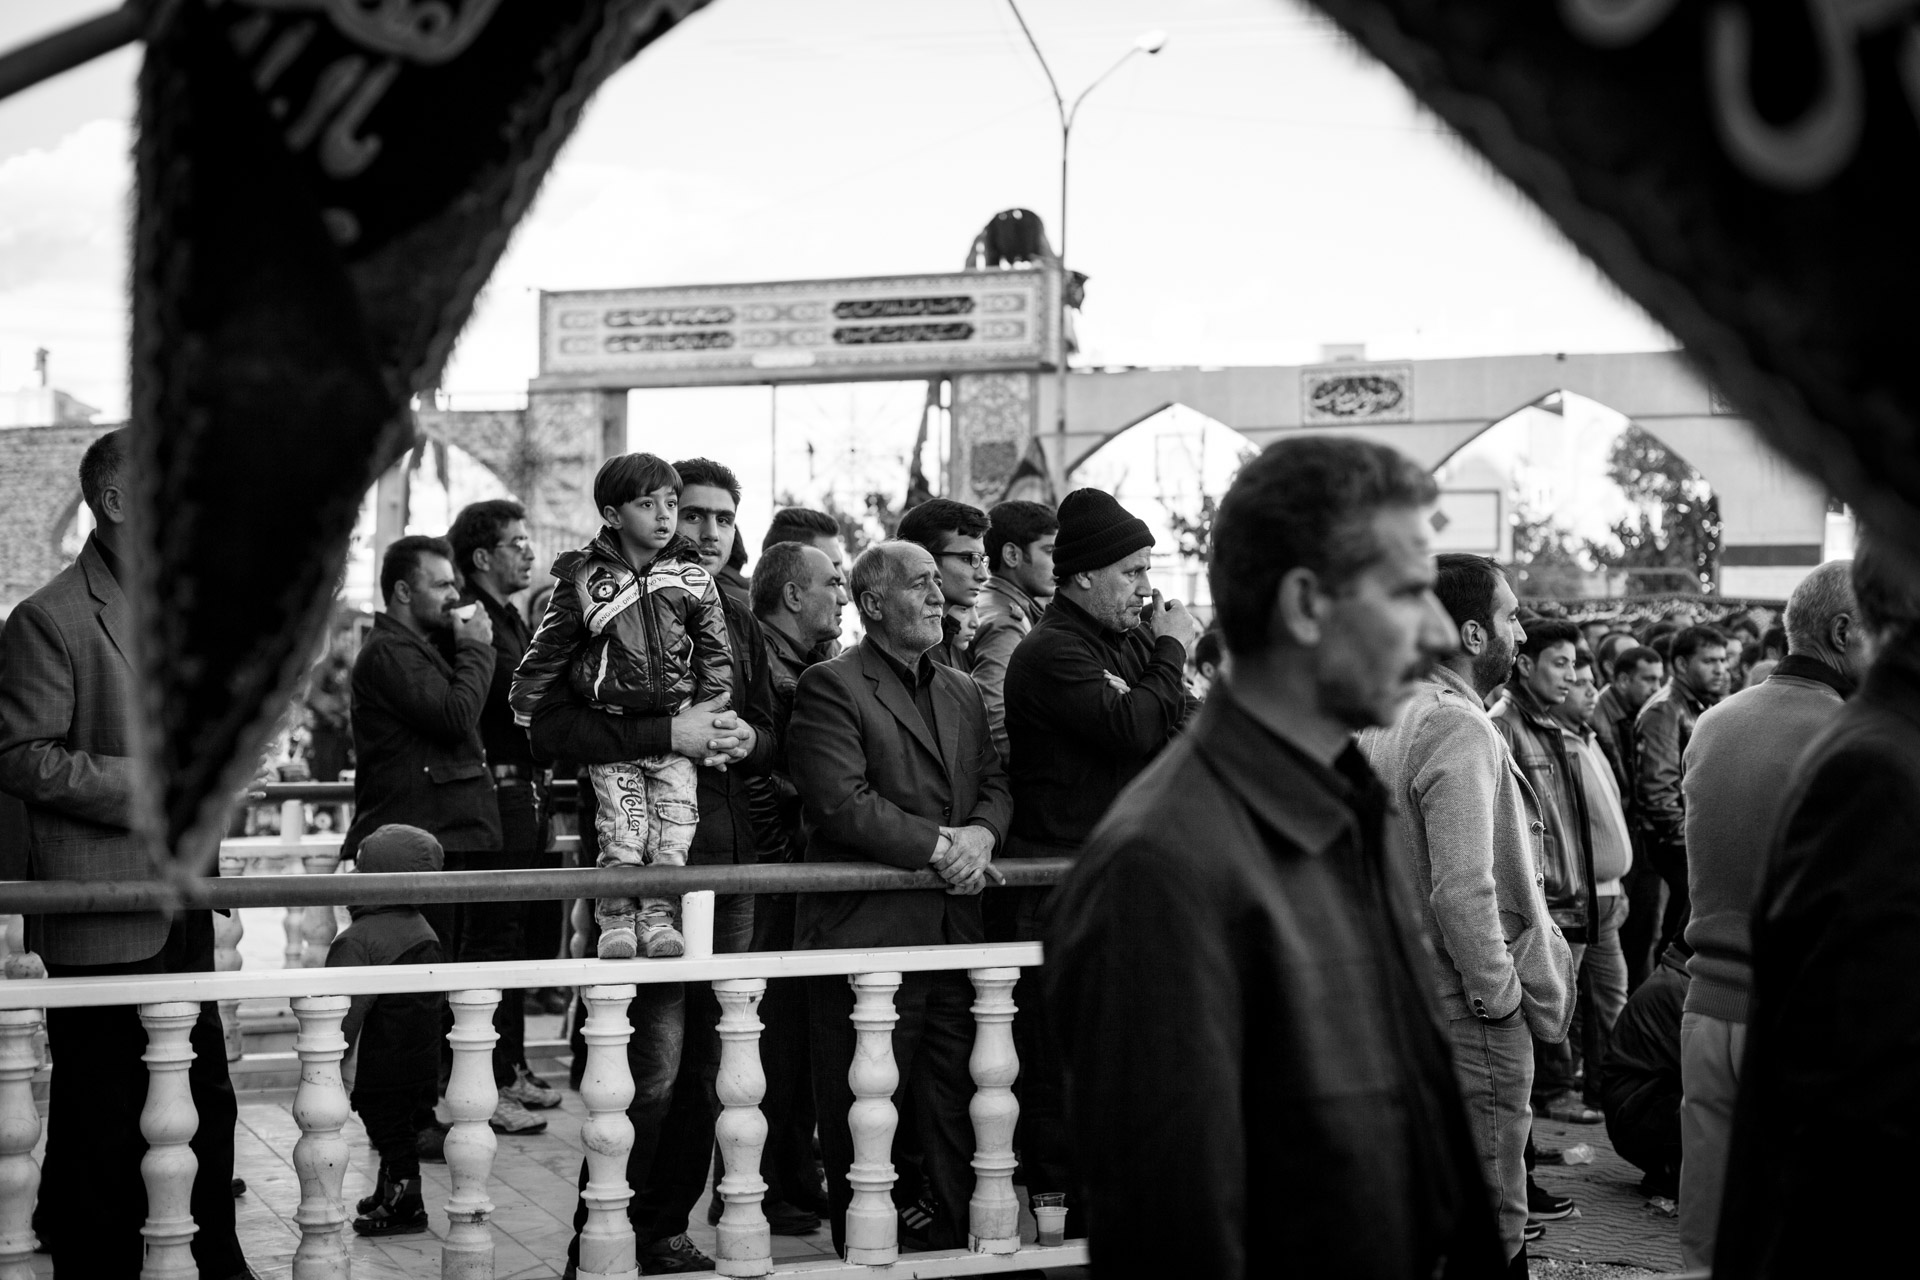 A big part of Ashura is the re-enactment of the Battle of Karbala. Visitors watch the open-air theatre in front of a mosque.